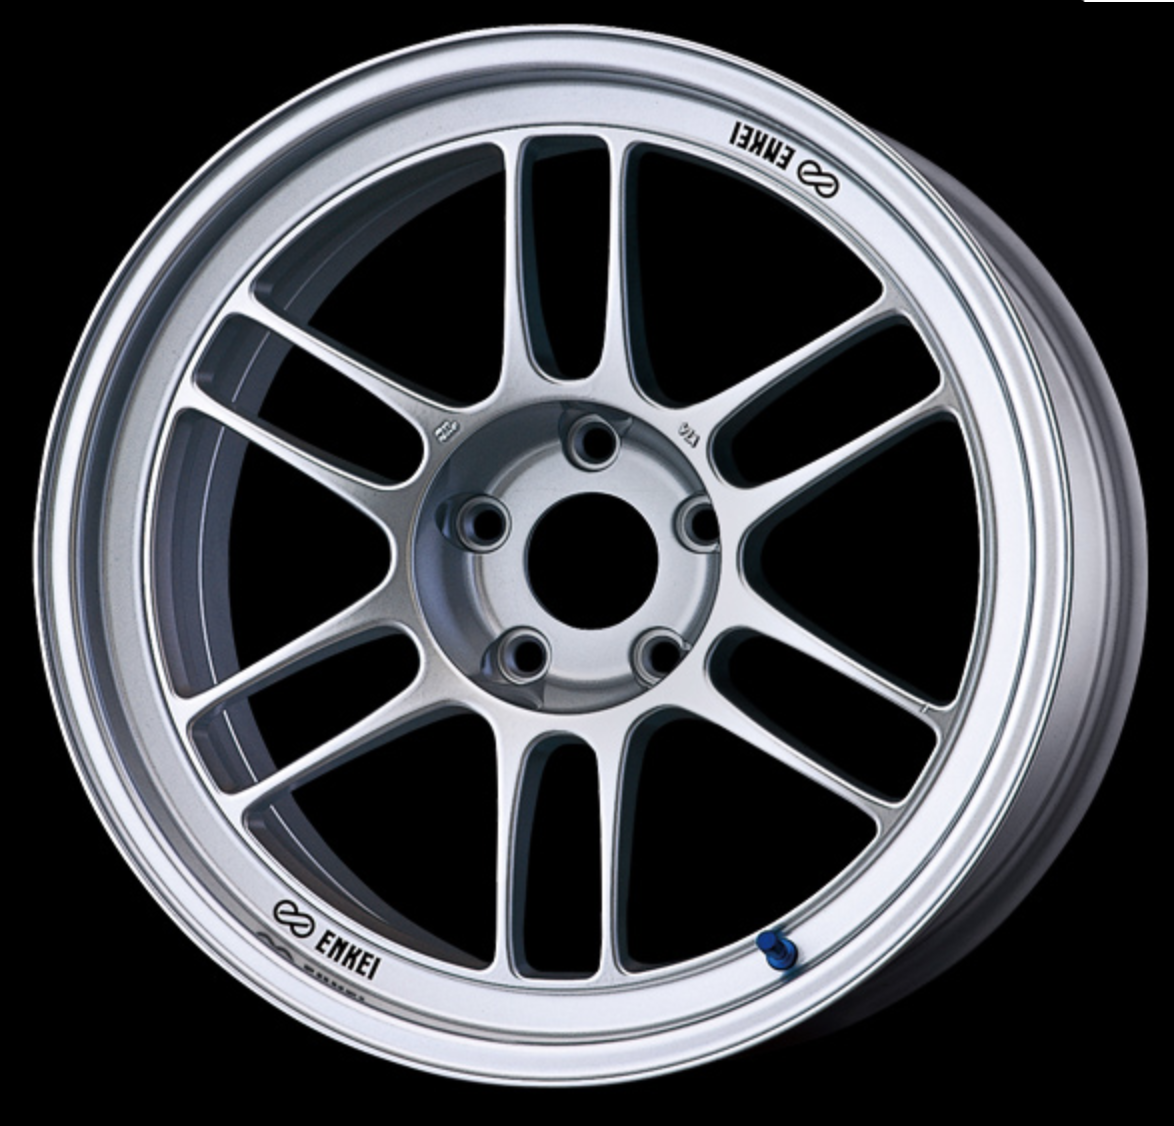 [Set of 4] ENKEI Racing RPF1 F:17x8.0J+45/R:17x9.0J+45 5x114.3 Silver for JZA80 SUPRA